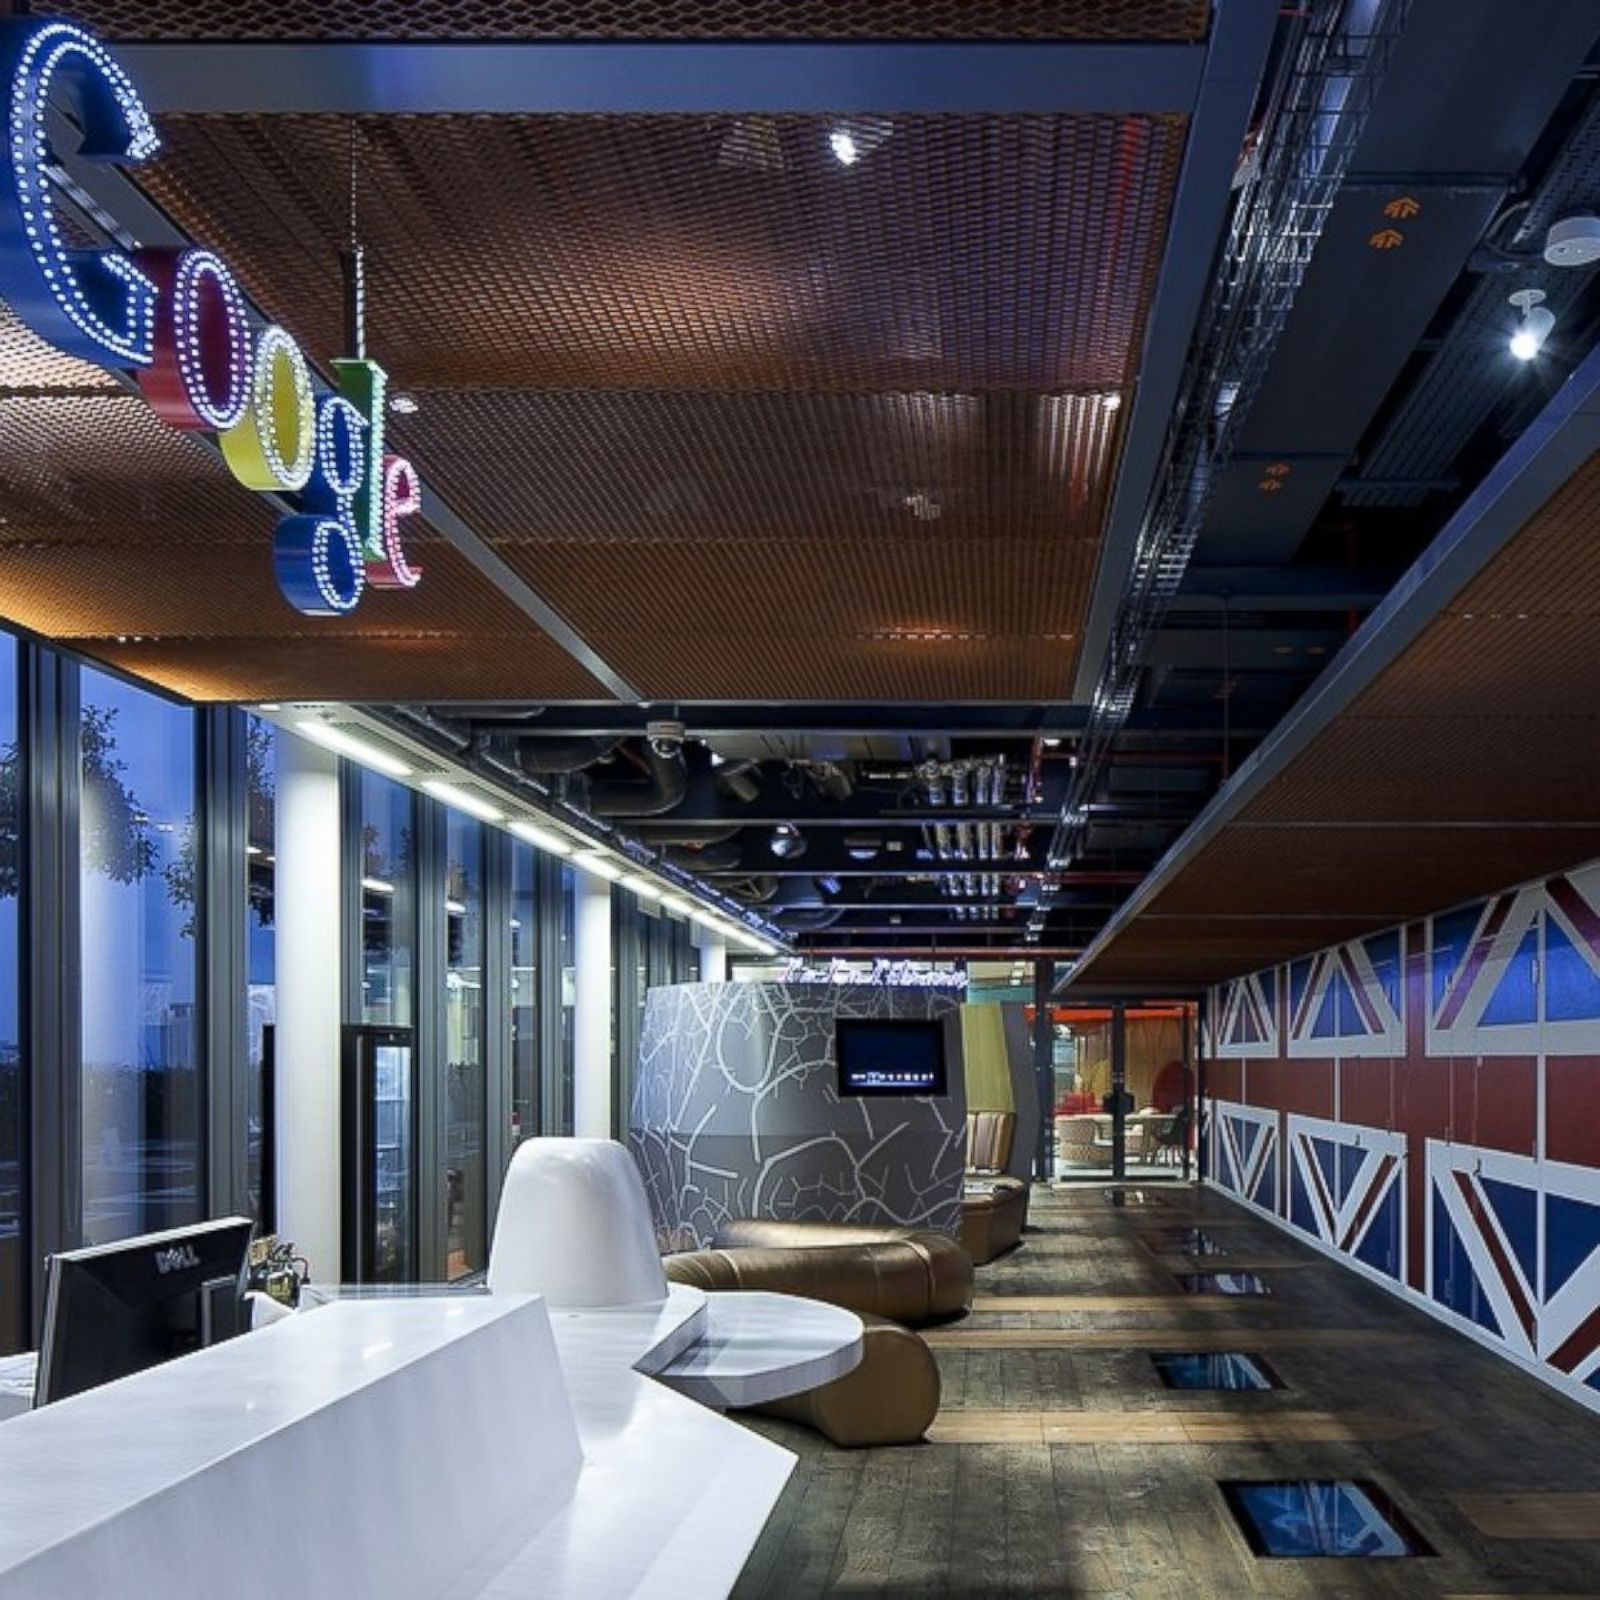 google london office google london office inside google offices around the world photos image 8 abc belgrave house google london office